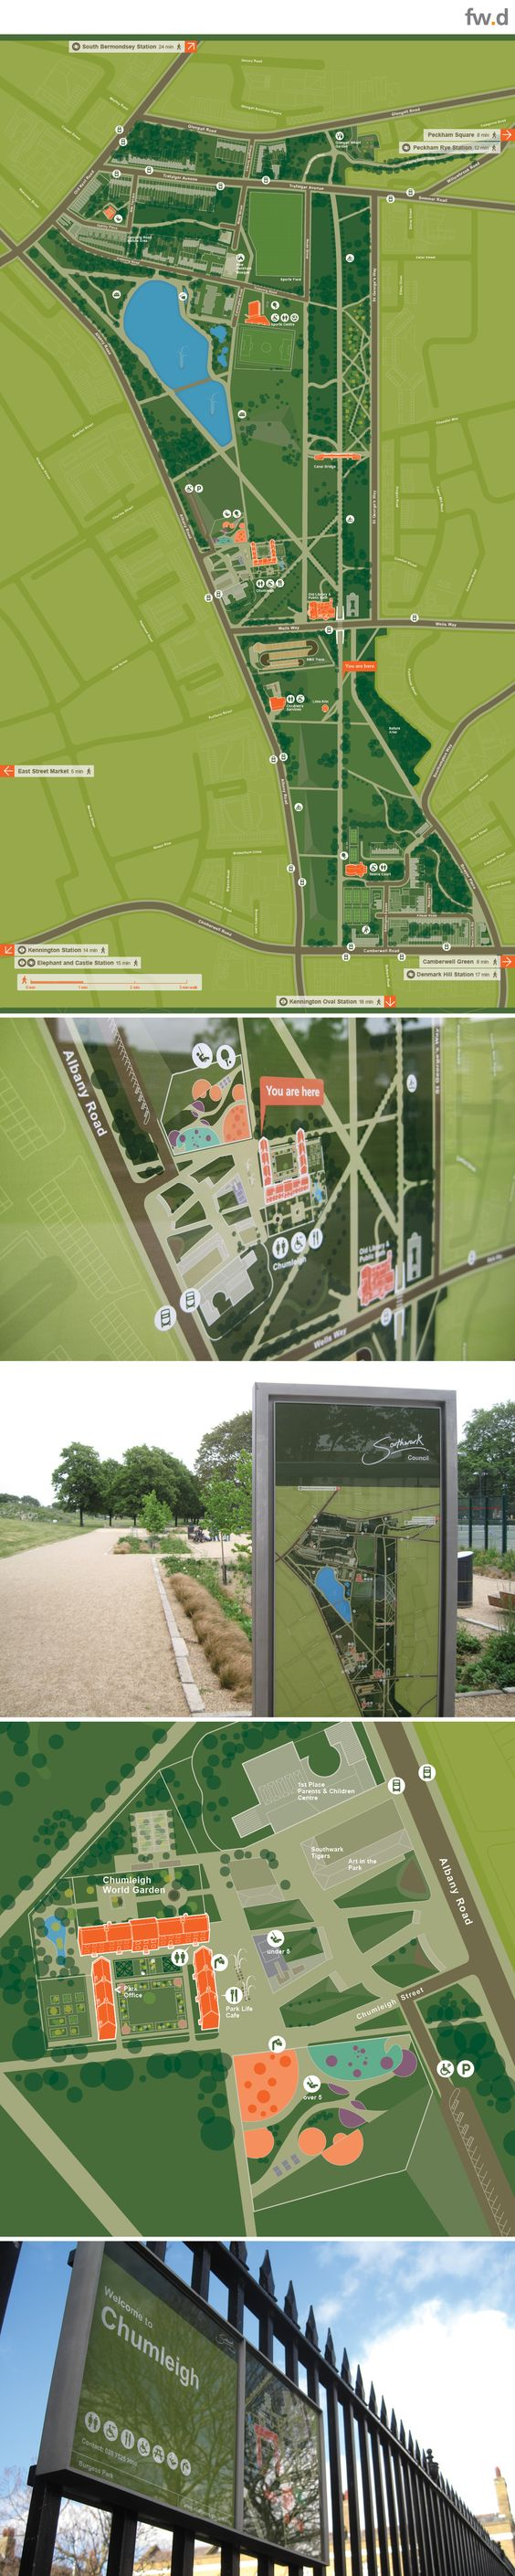 Parks products and style on pinterest for Product design consultancy london